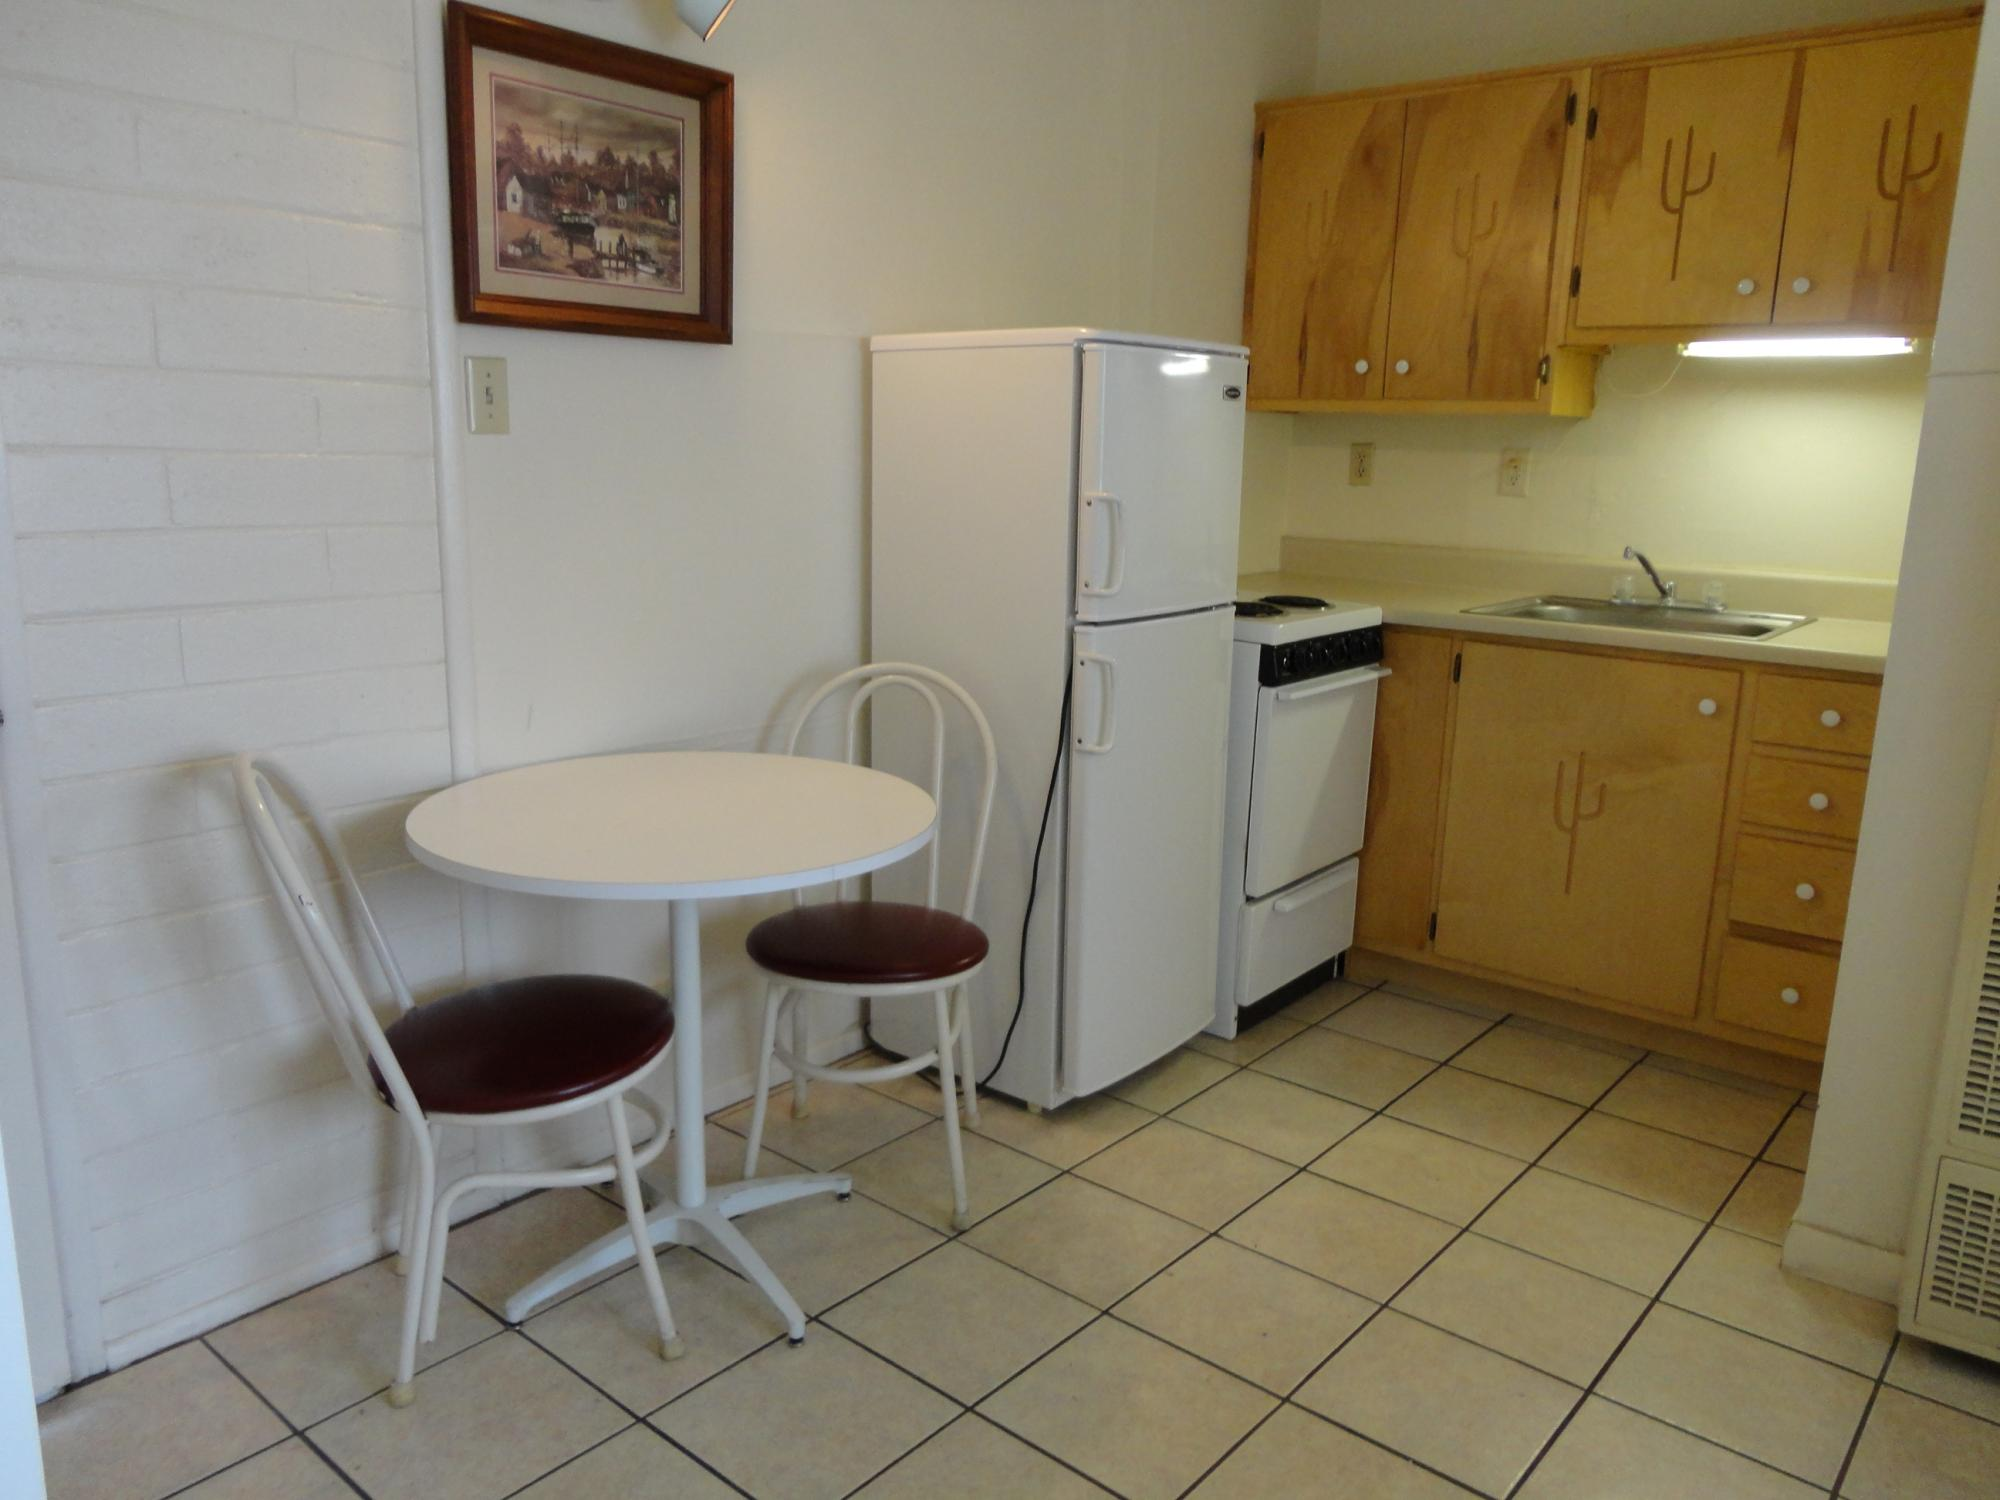 Each unit is approximately 250 sq. ft. with a 3/4 bath, and include all  utilities. These units start at $375 per month (based on a 6-month lease).